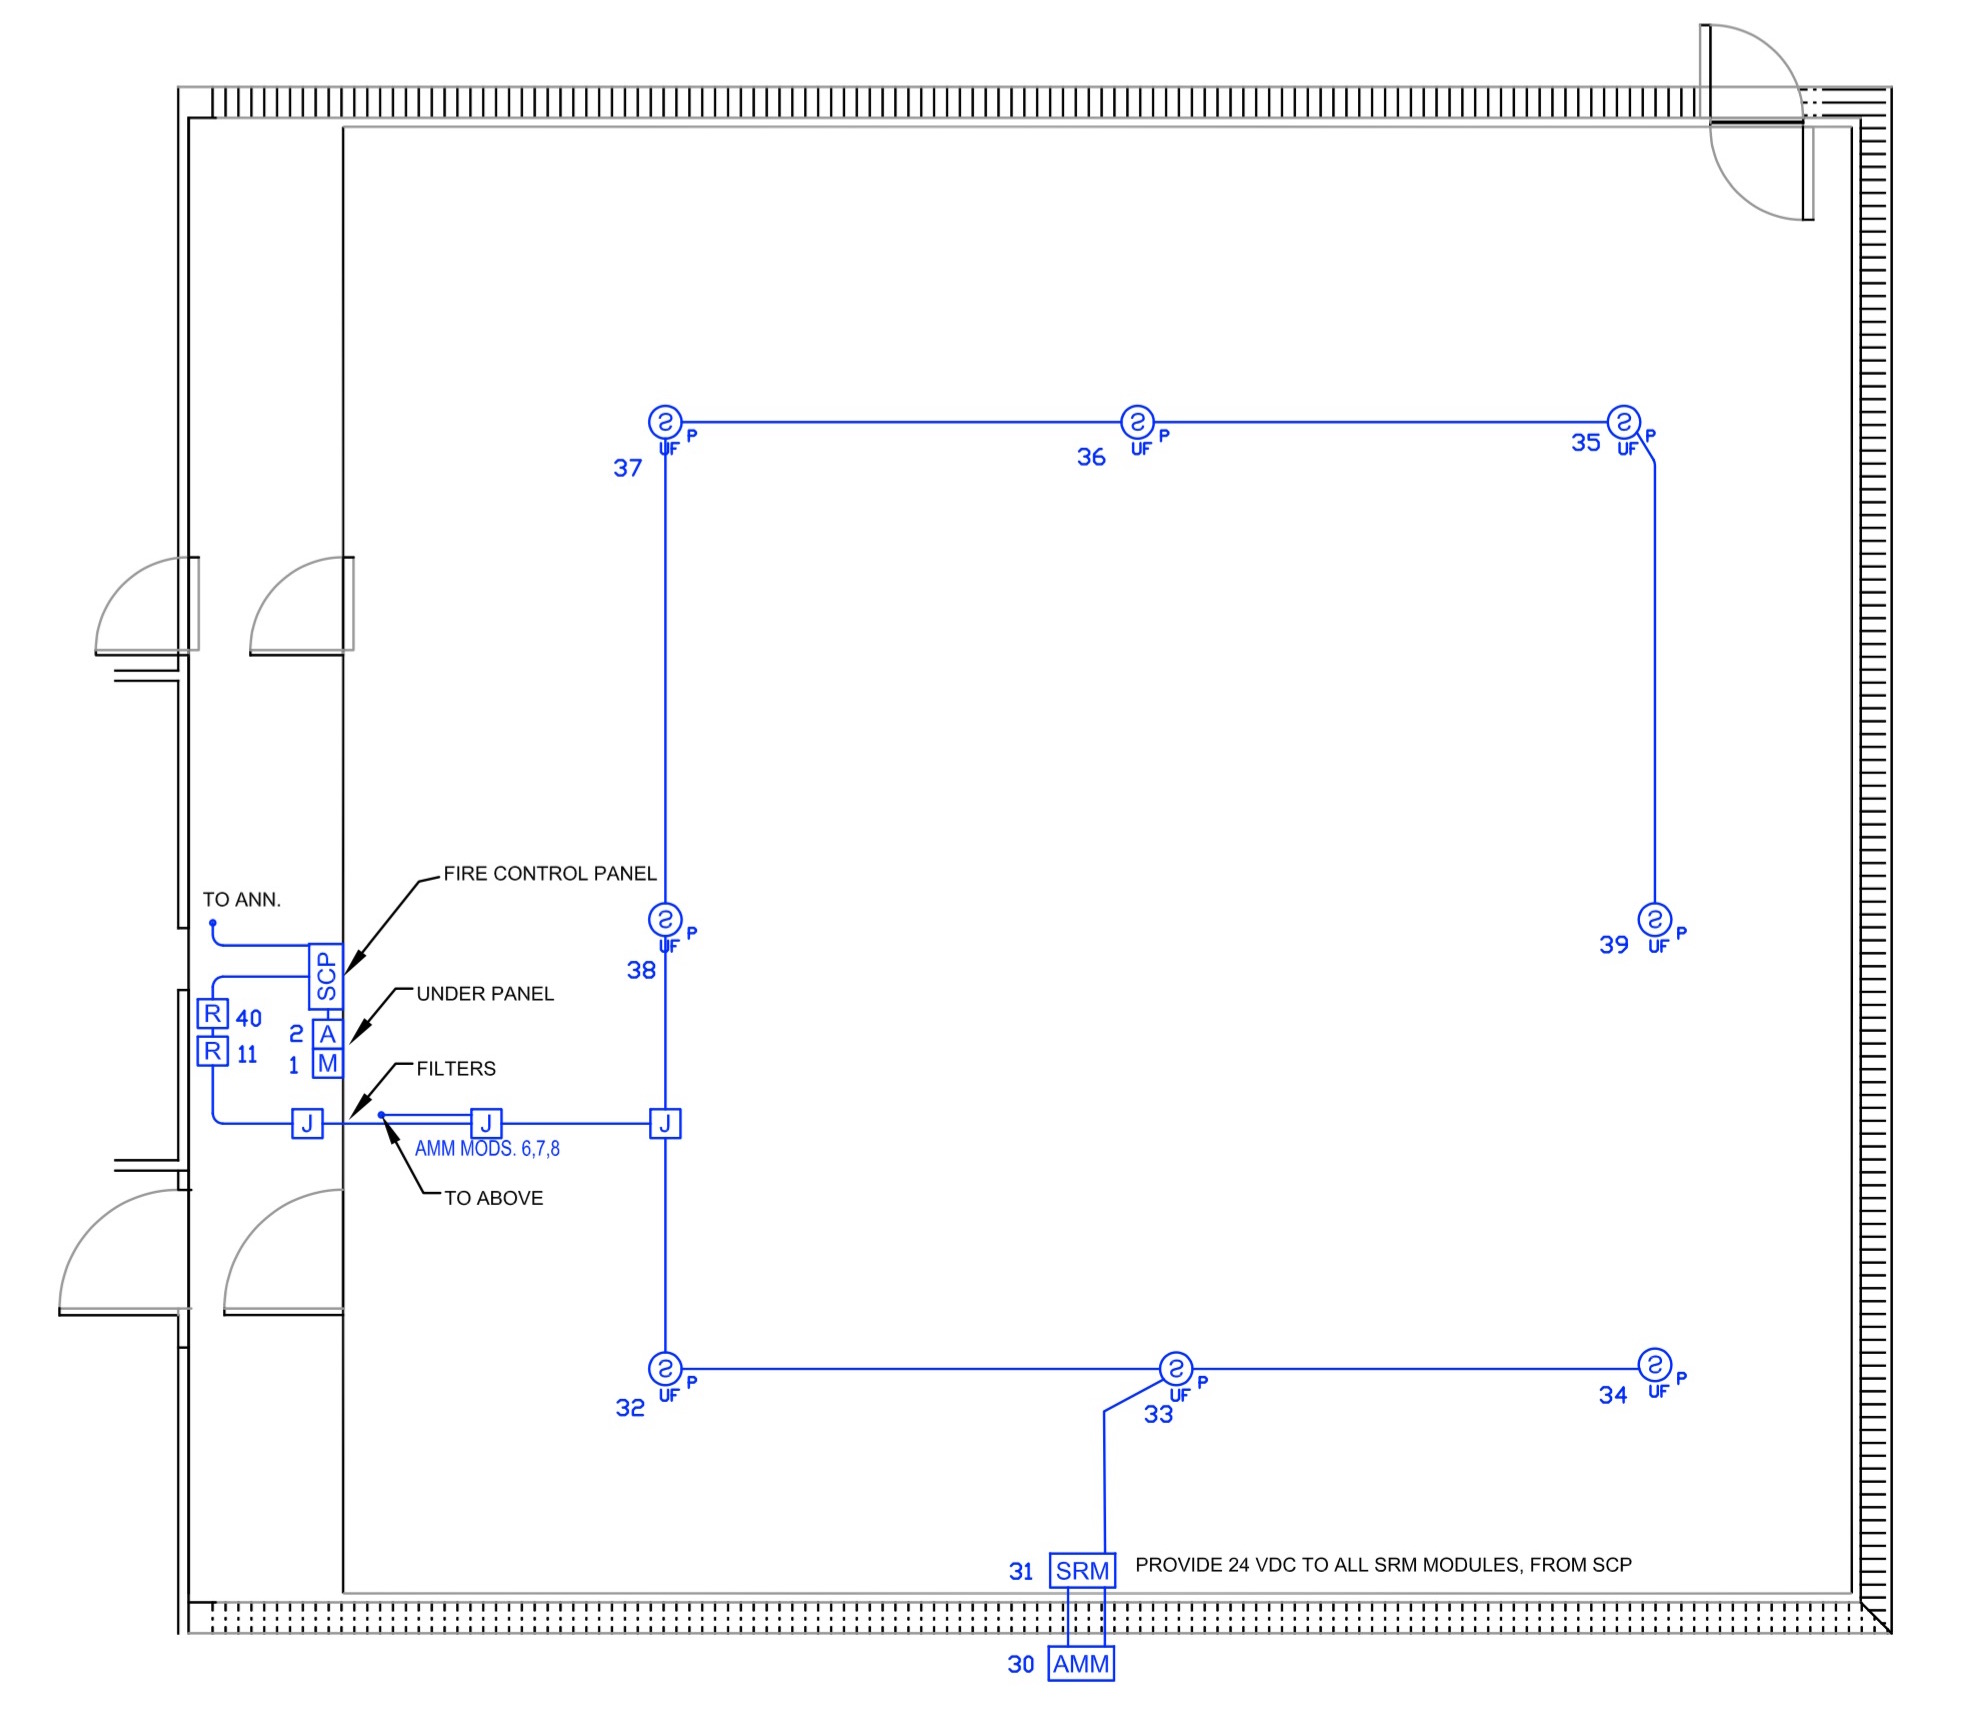 Widar Fire Protection Wiring Diagram In Addition Patch Panel Em Inc Drawing Showing Correlator Room Below Floor Electrical Layout Part Of Fm200 0574b03 Fa03